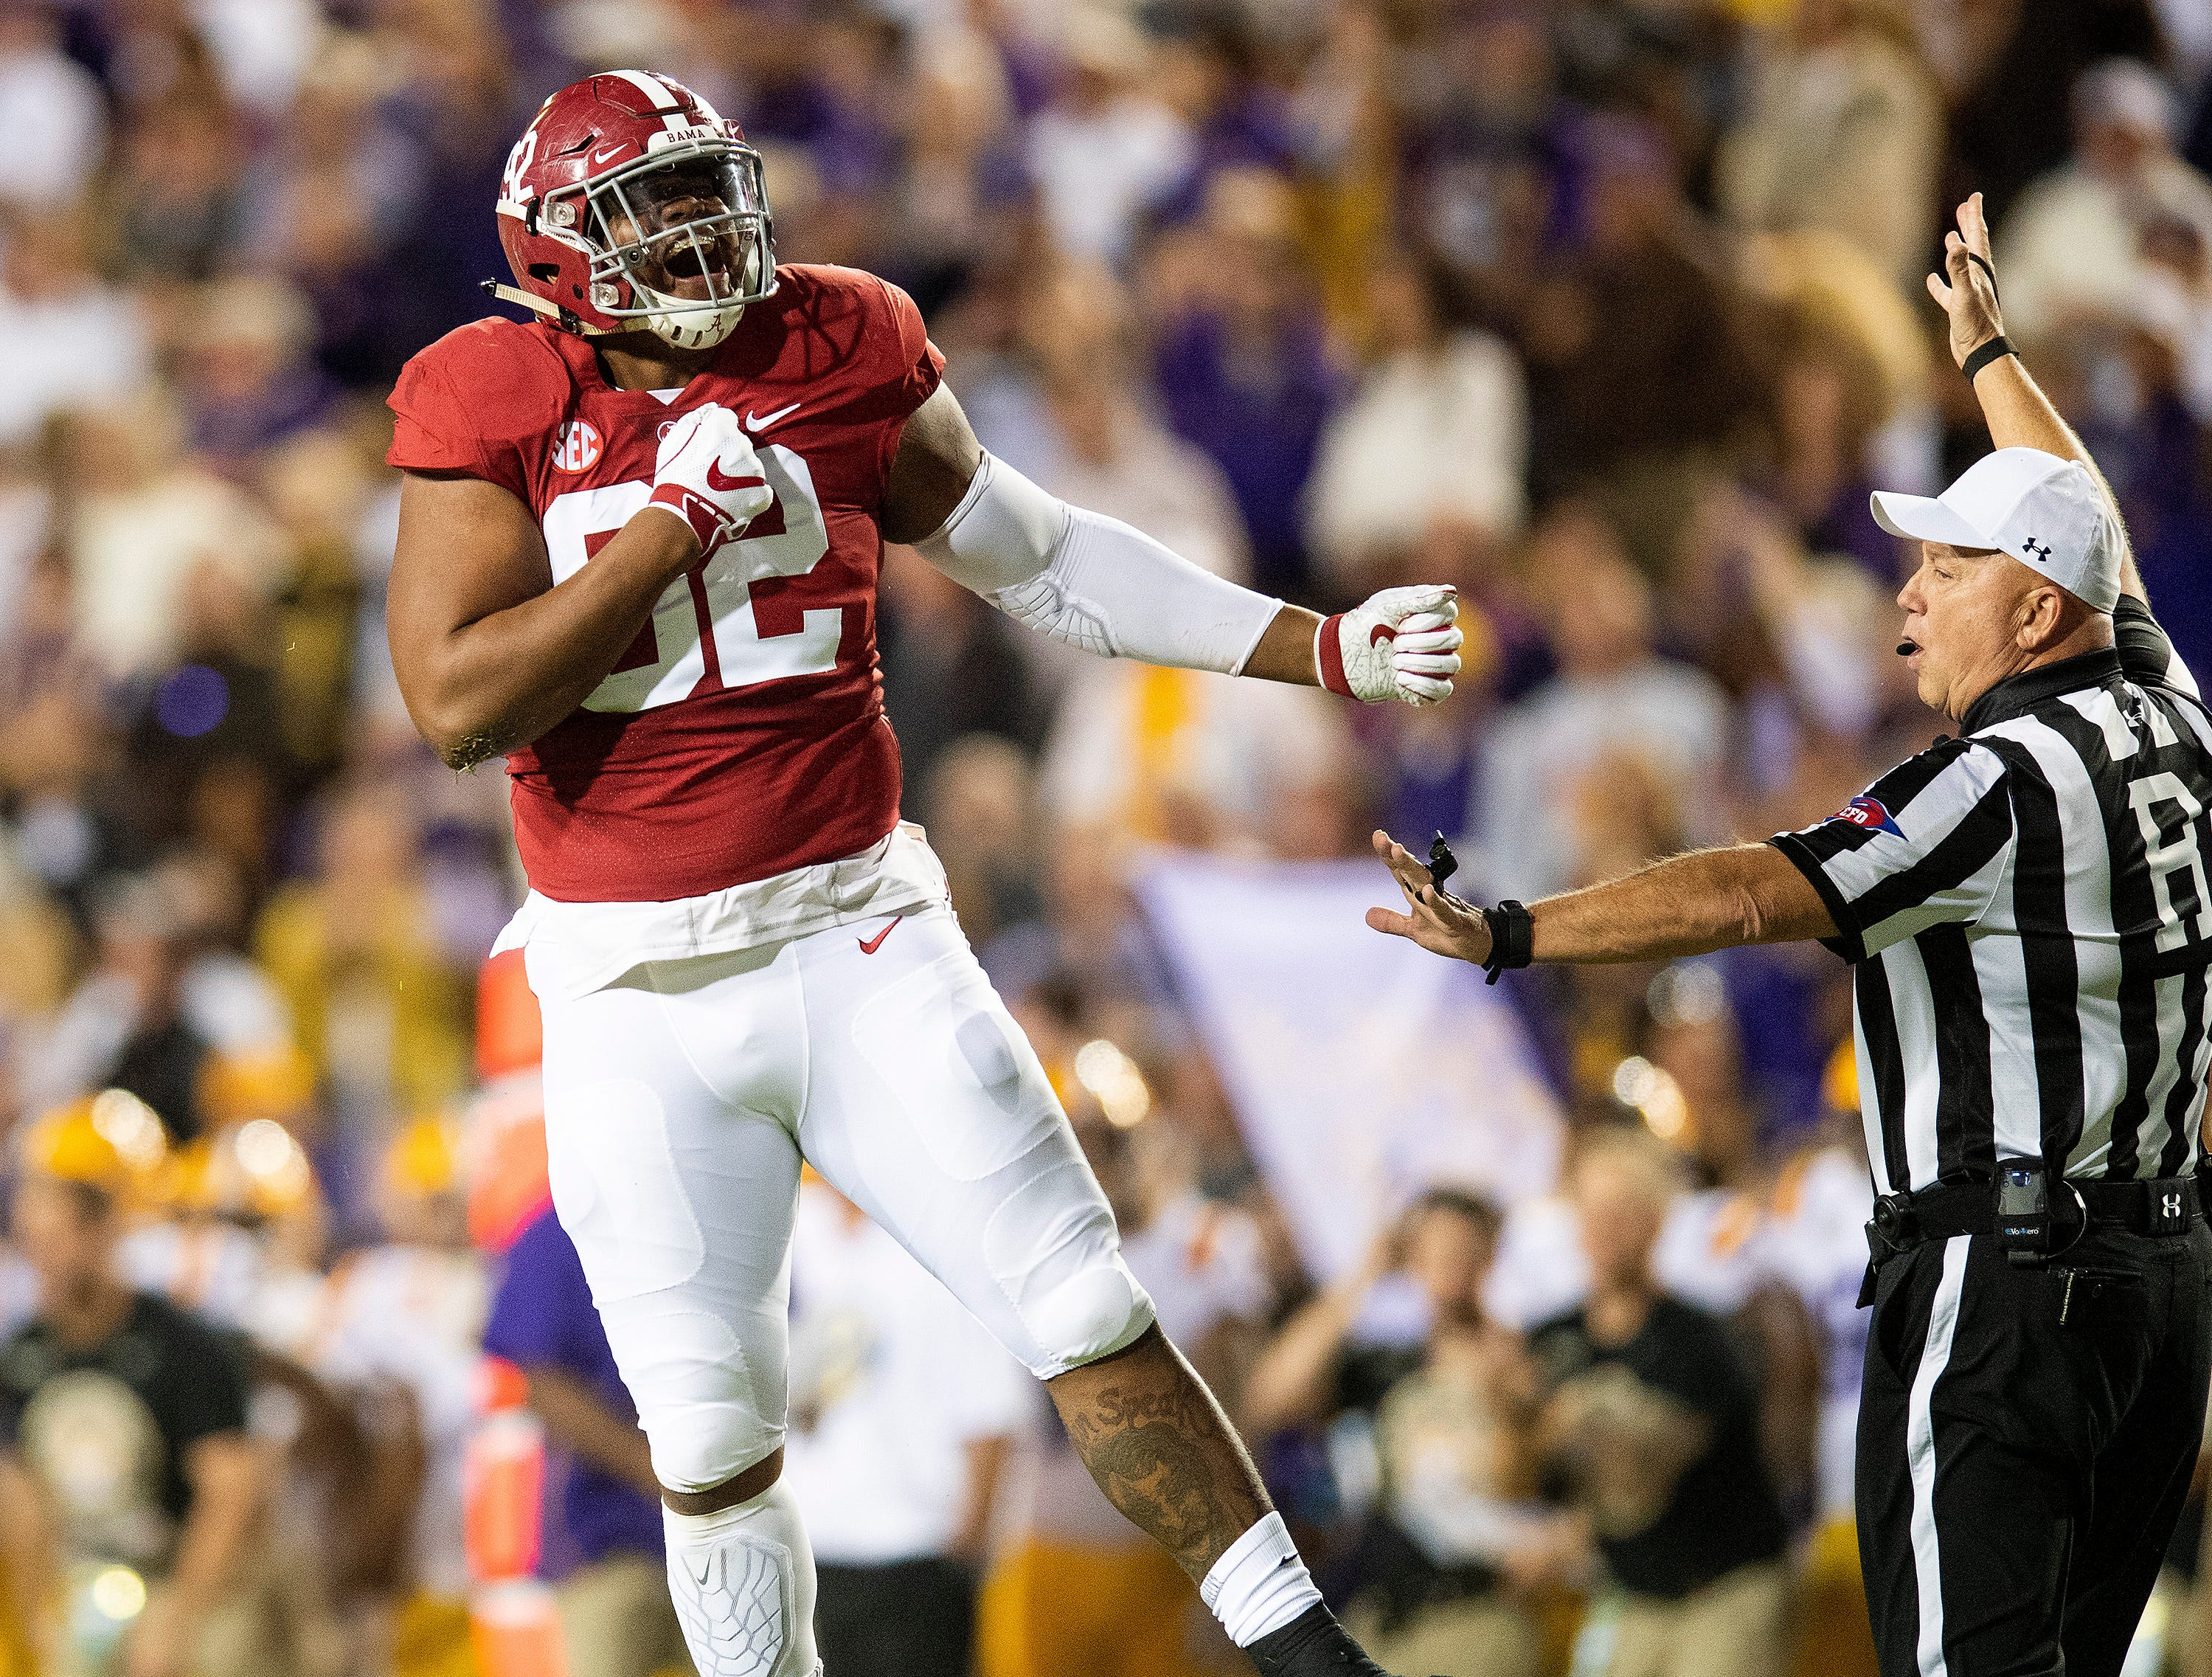 Alabama defensive lineman Quinnen Williams (92) celebrates a sack against Louisiana State University in first half action at Tiger Stadium in Baton Rouge, La., on Saturday November 3, 2018.